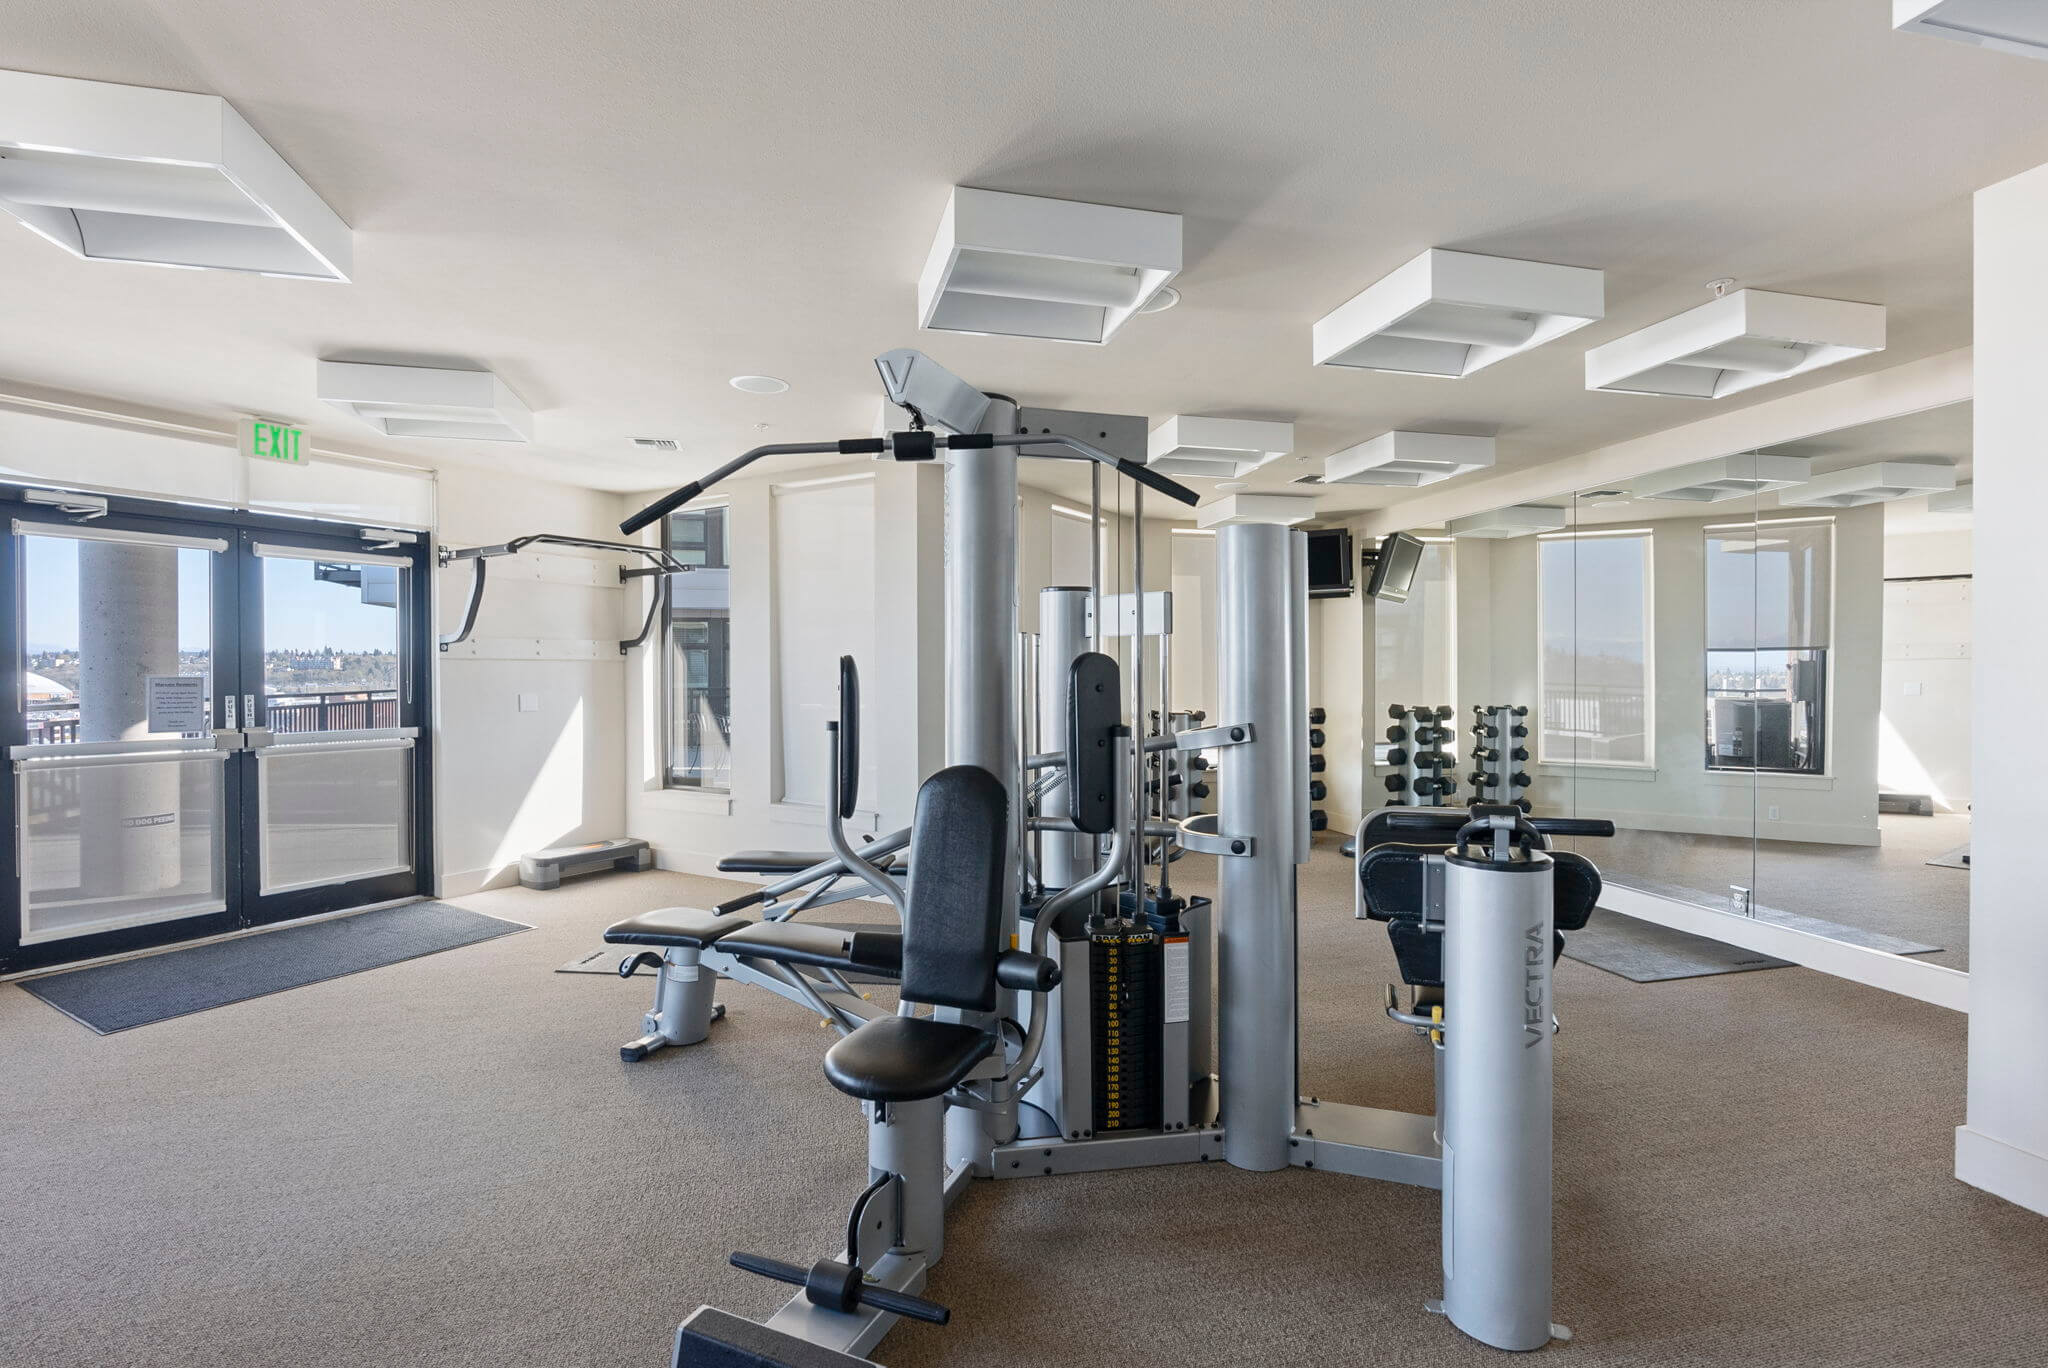 Weight machines and free weights